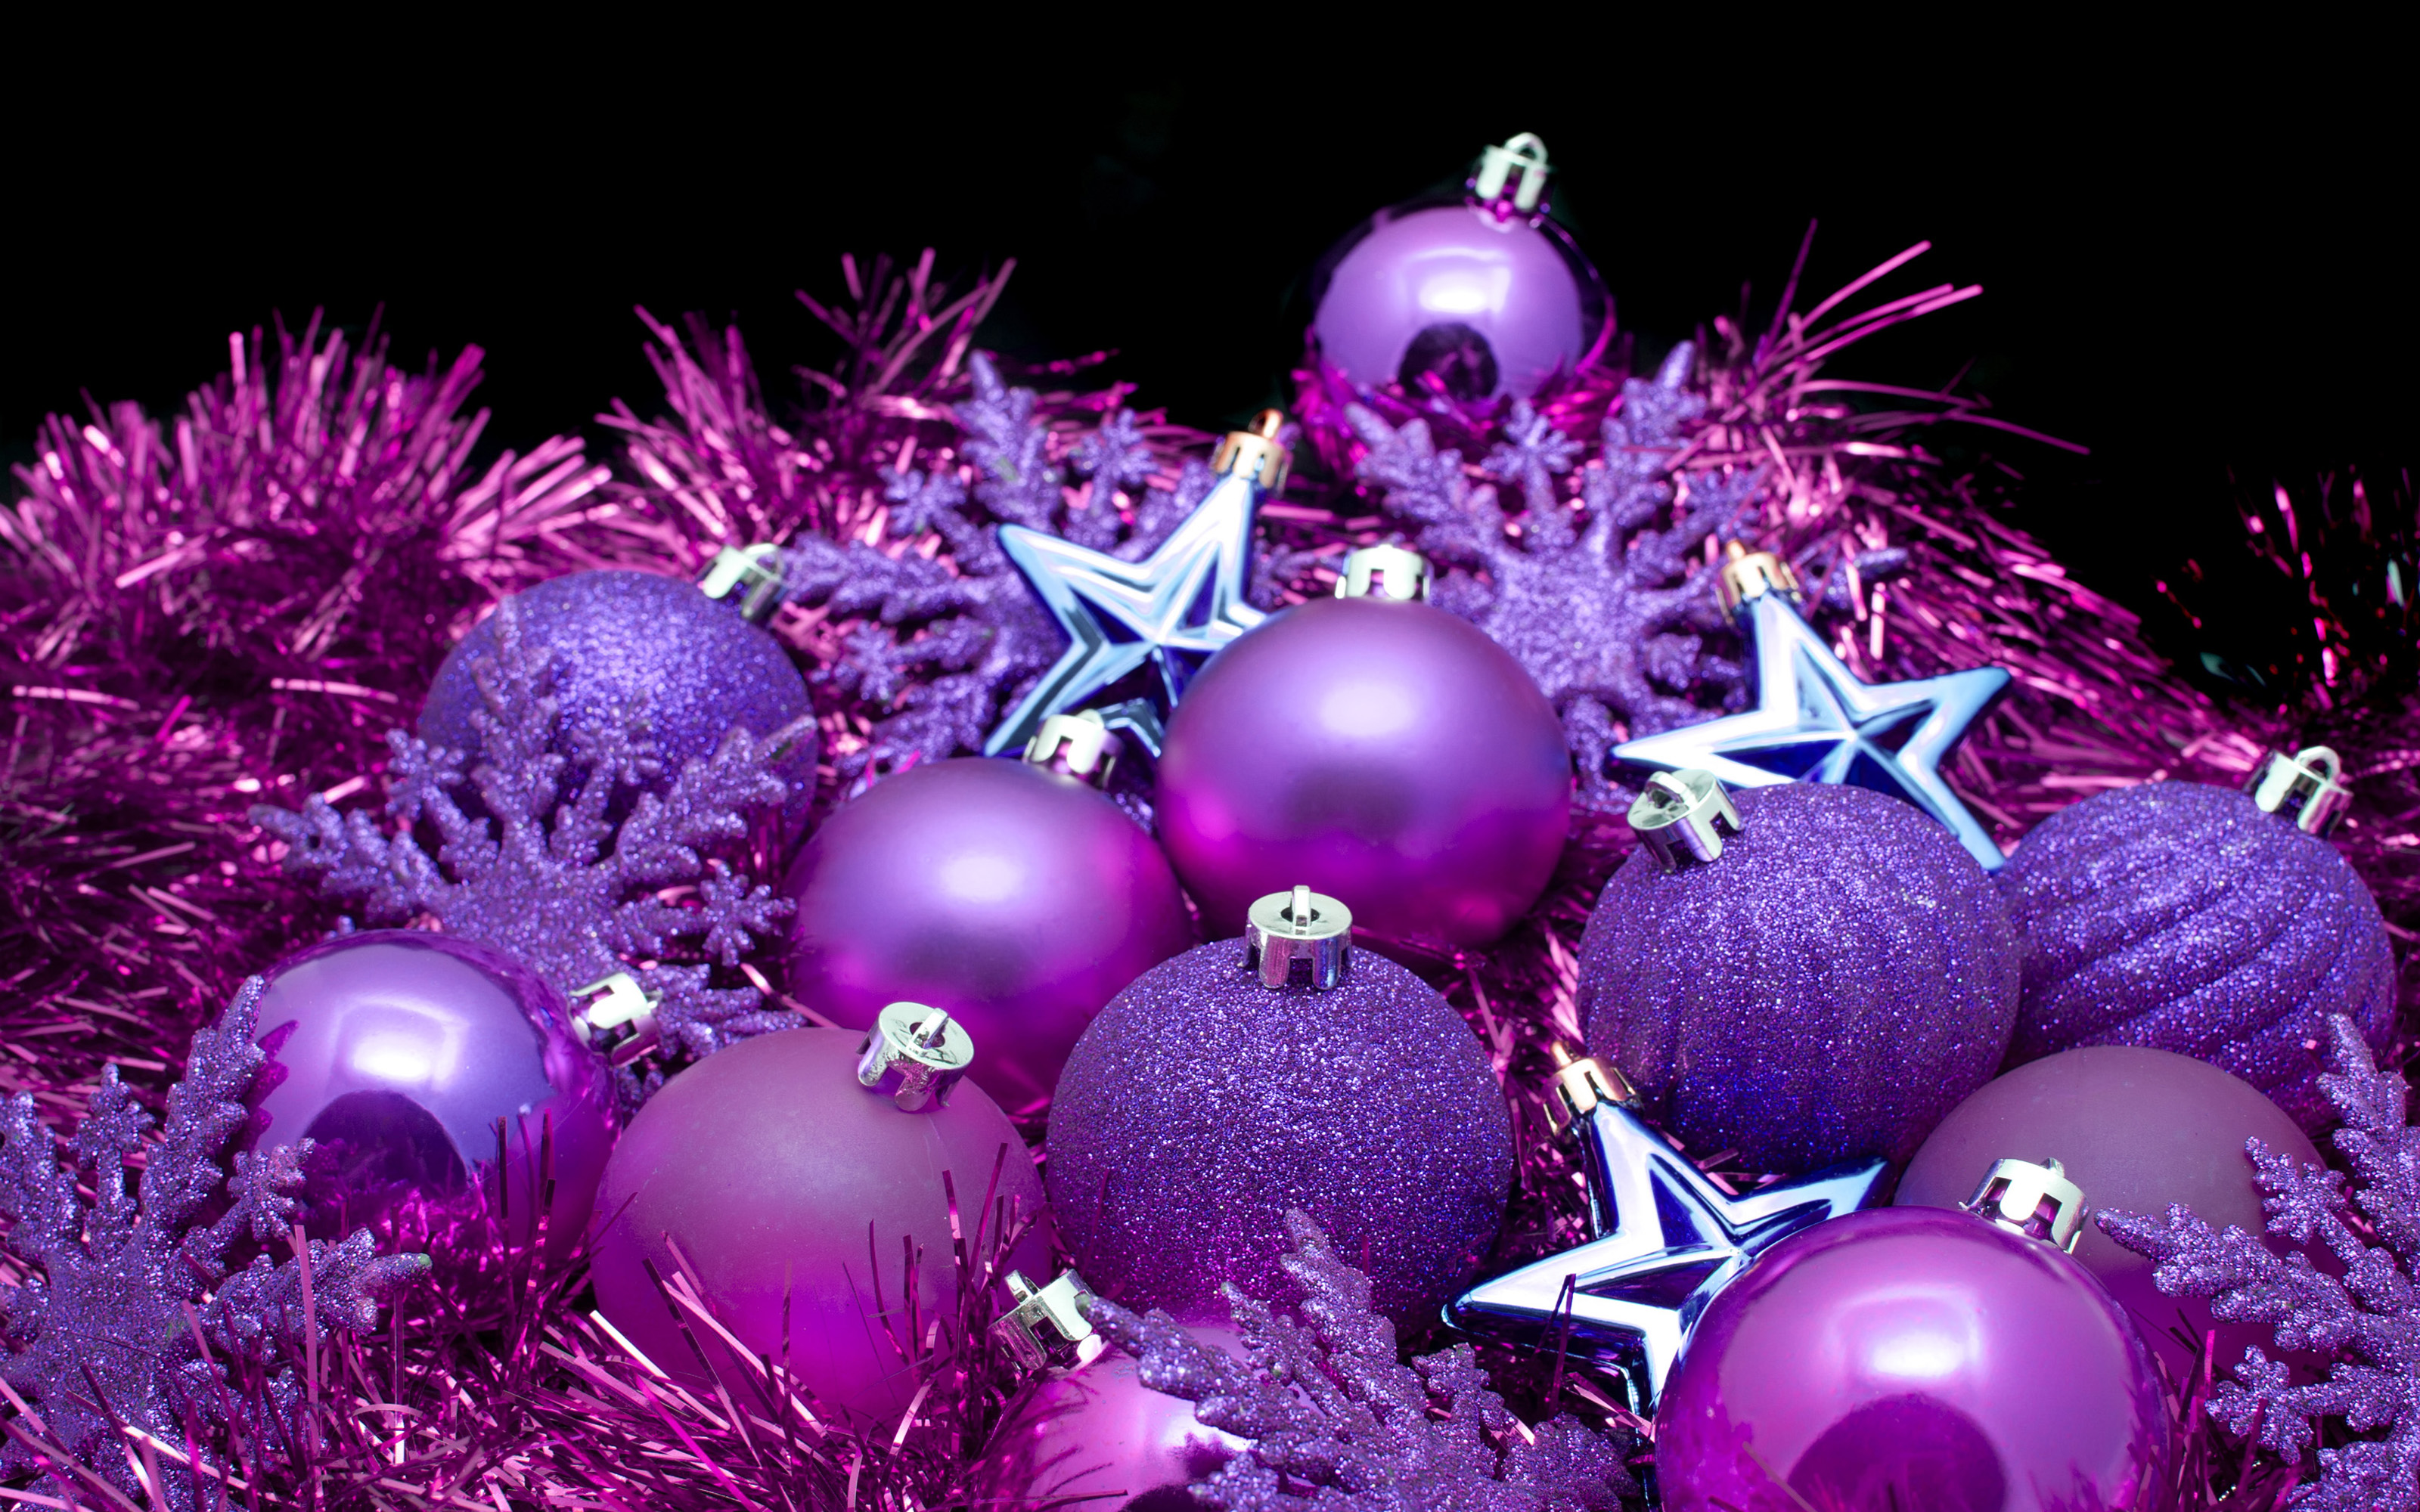 purple christmas decorations hd wallpaper background. Black Bedroom Furniture Sets. Home Design Ideas